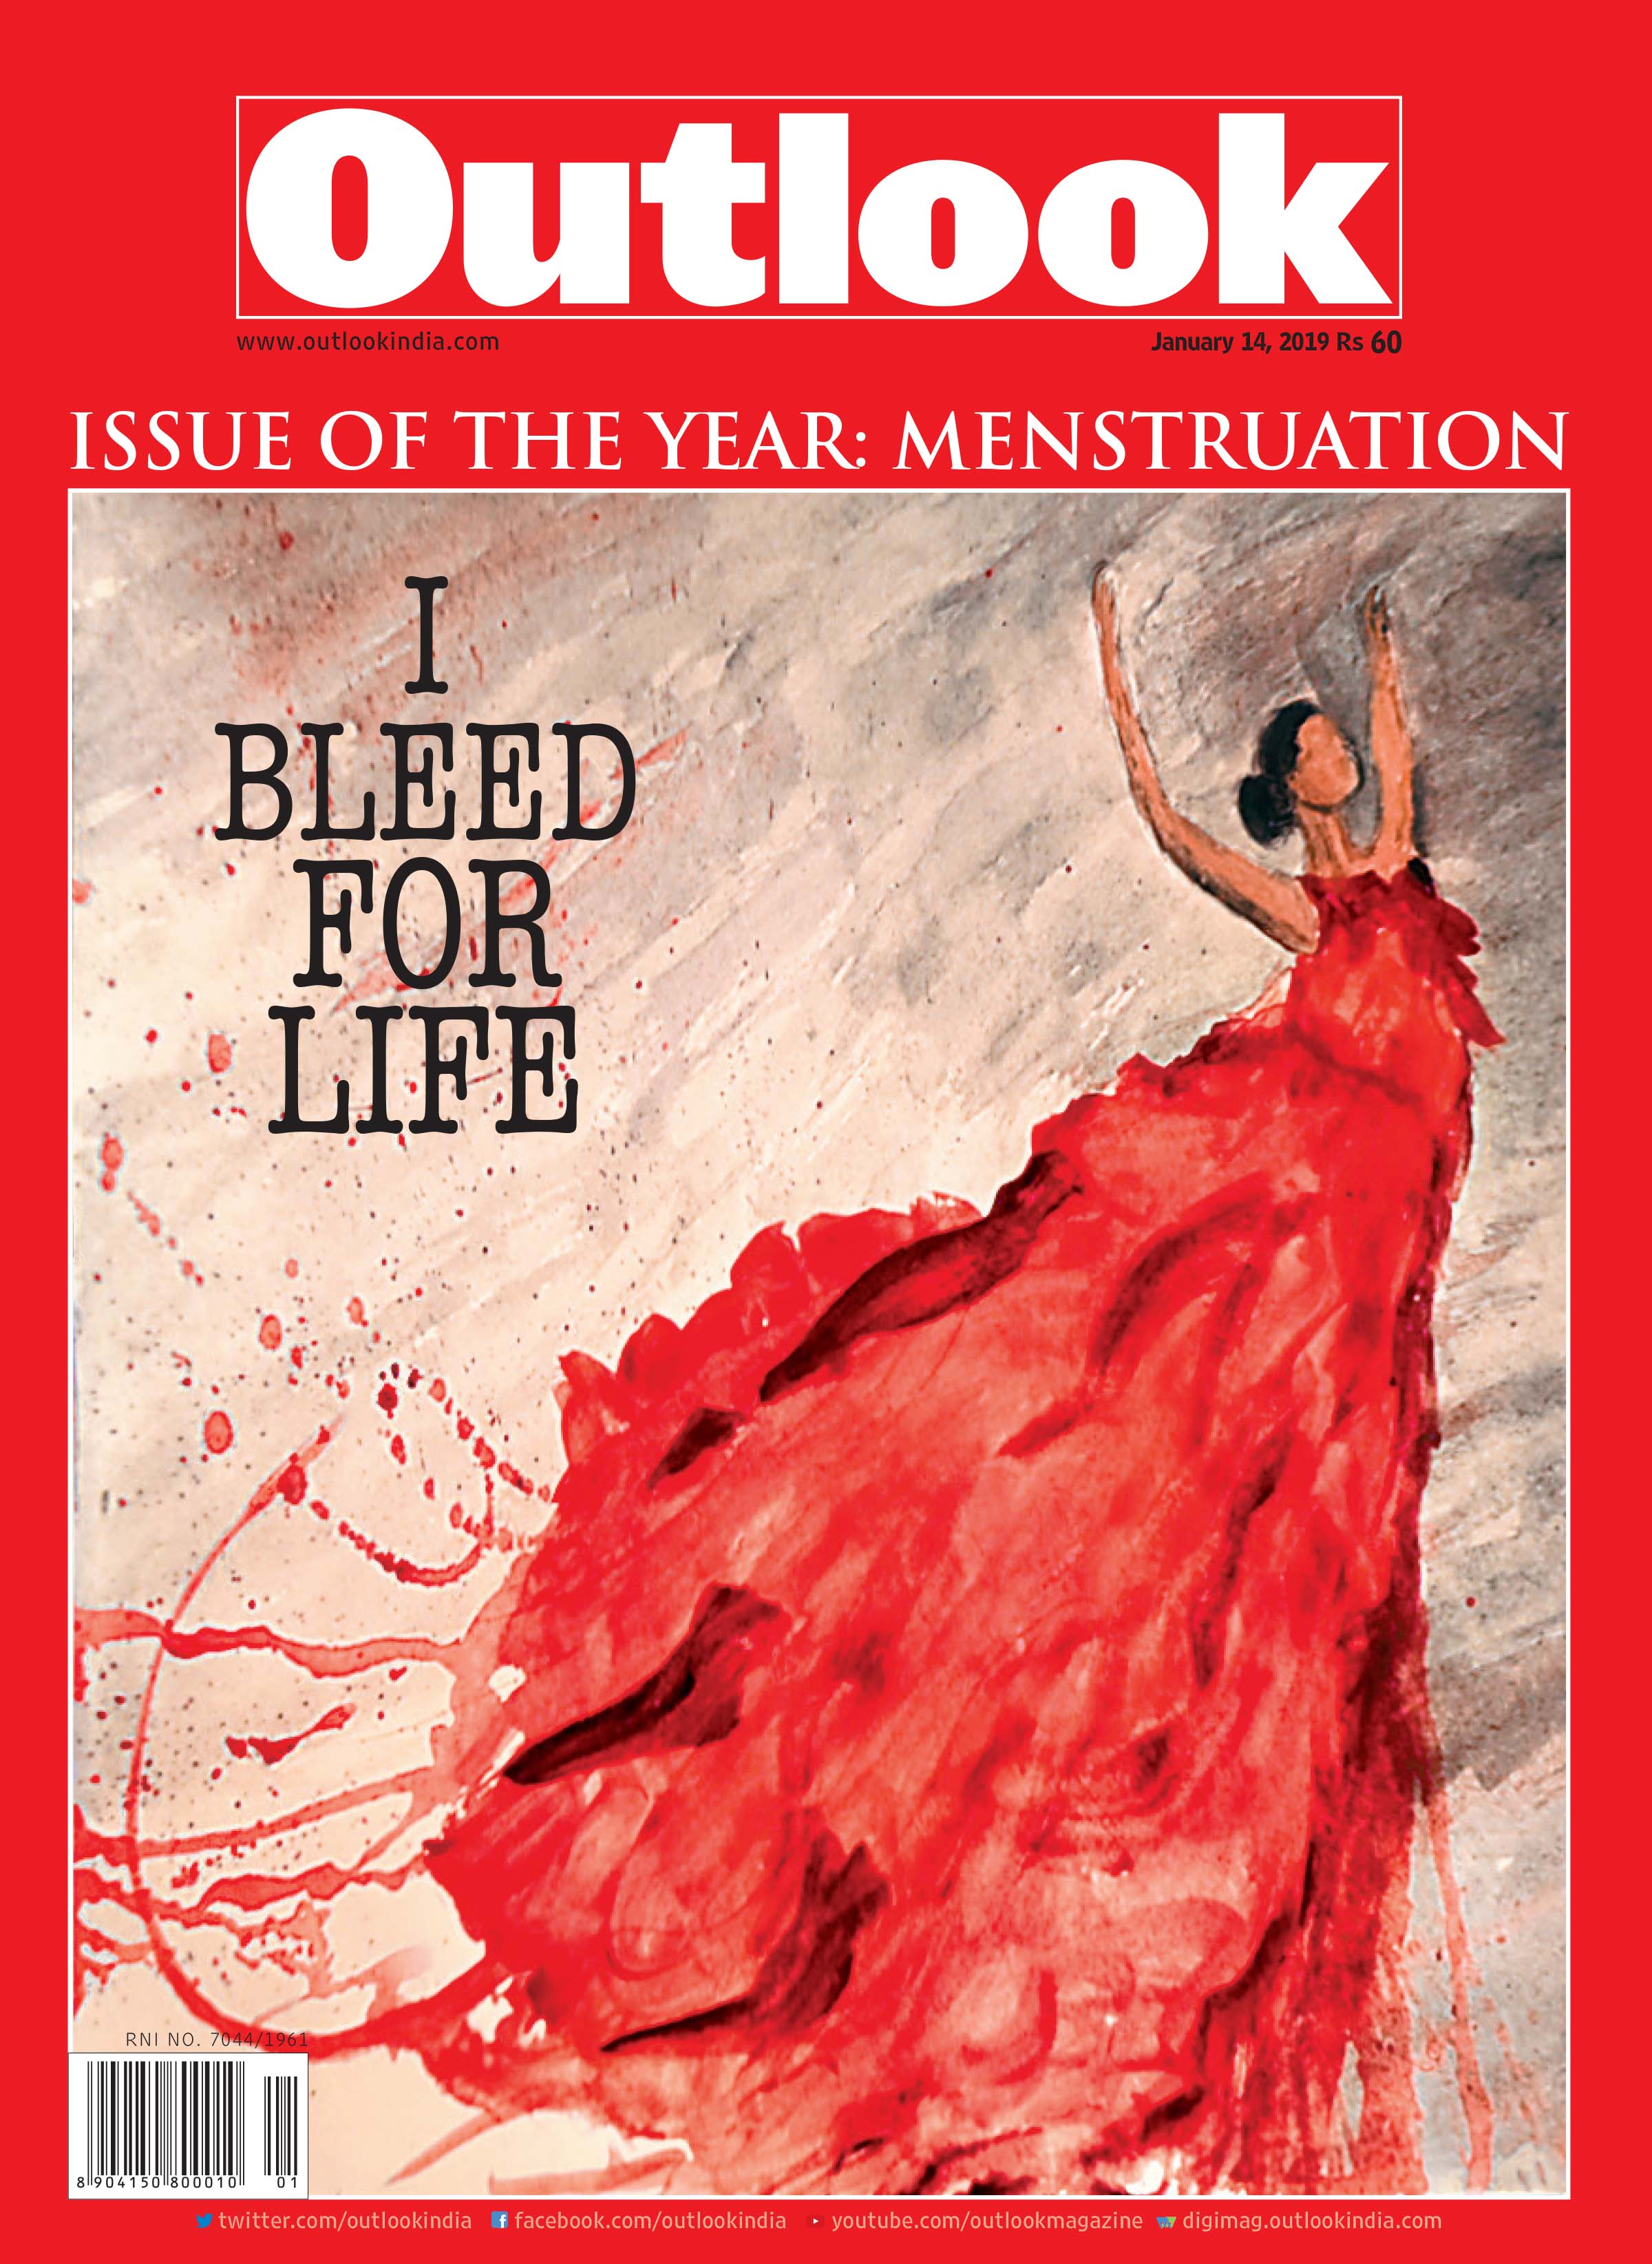 Editor's Essay: Why Menstruation Is Outlook's Issue Of The Year